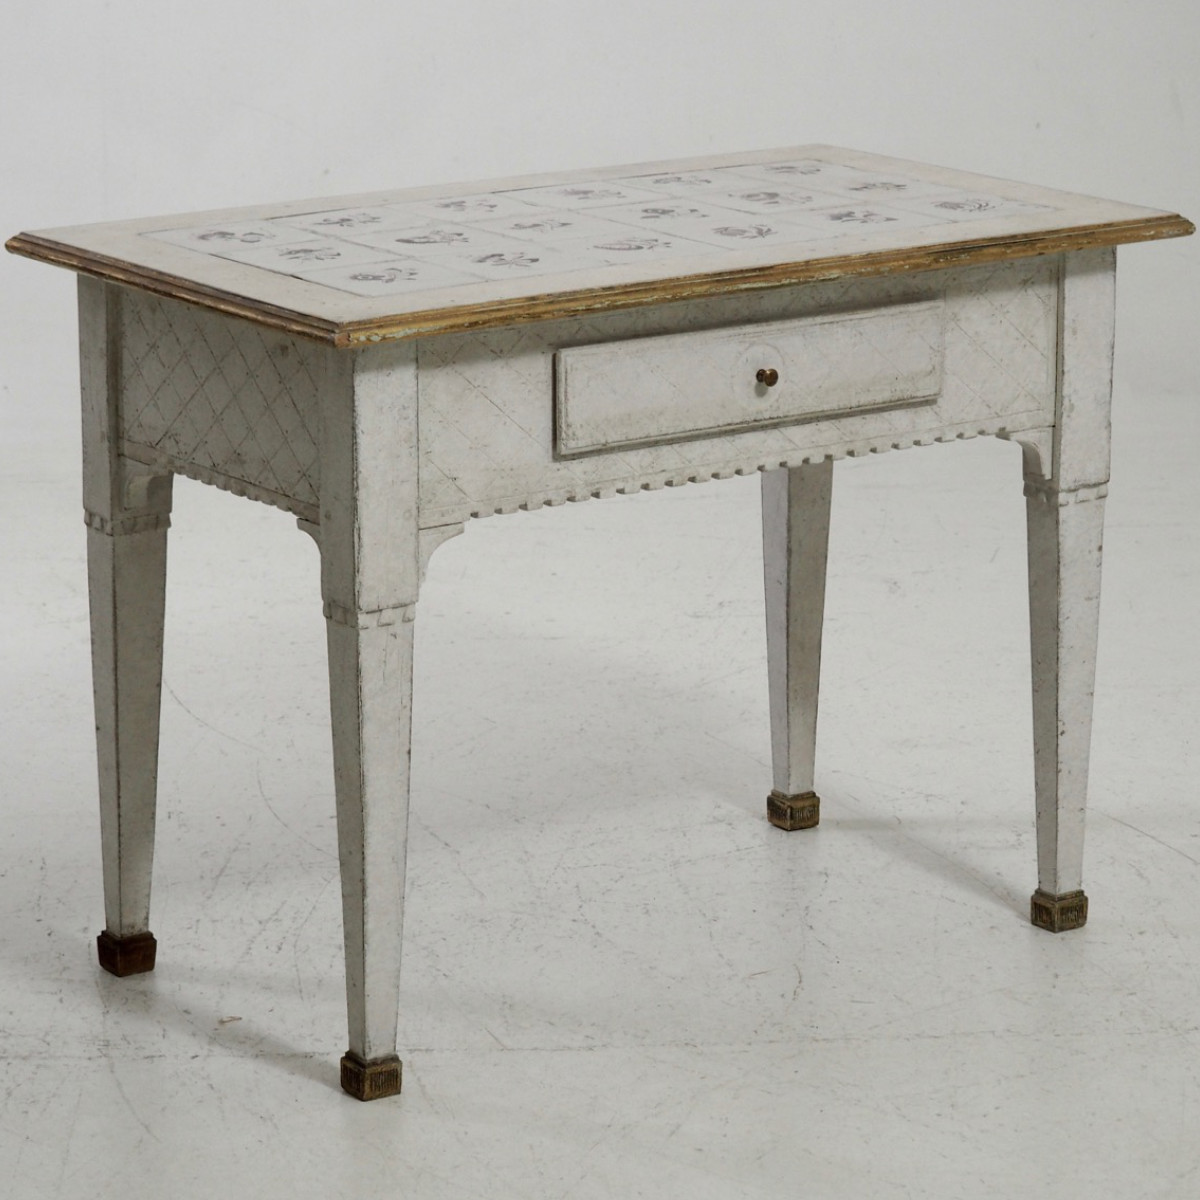 Scandinavian tile-top table, 1790. - € 1.600